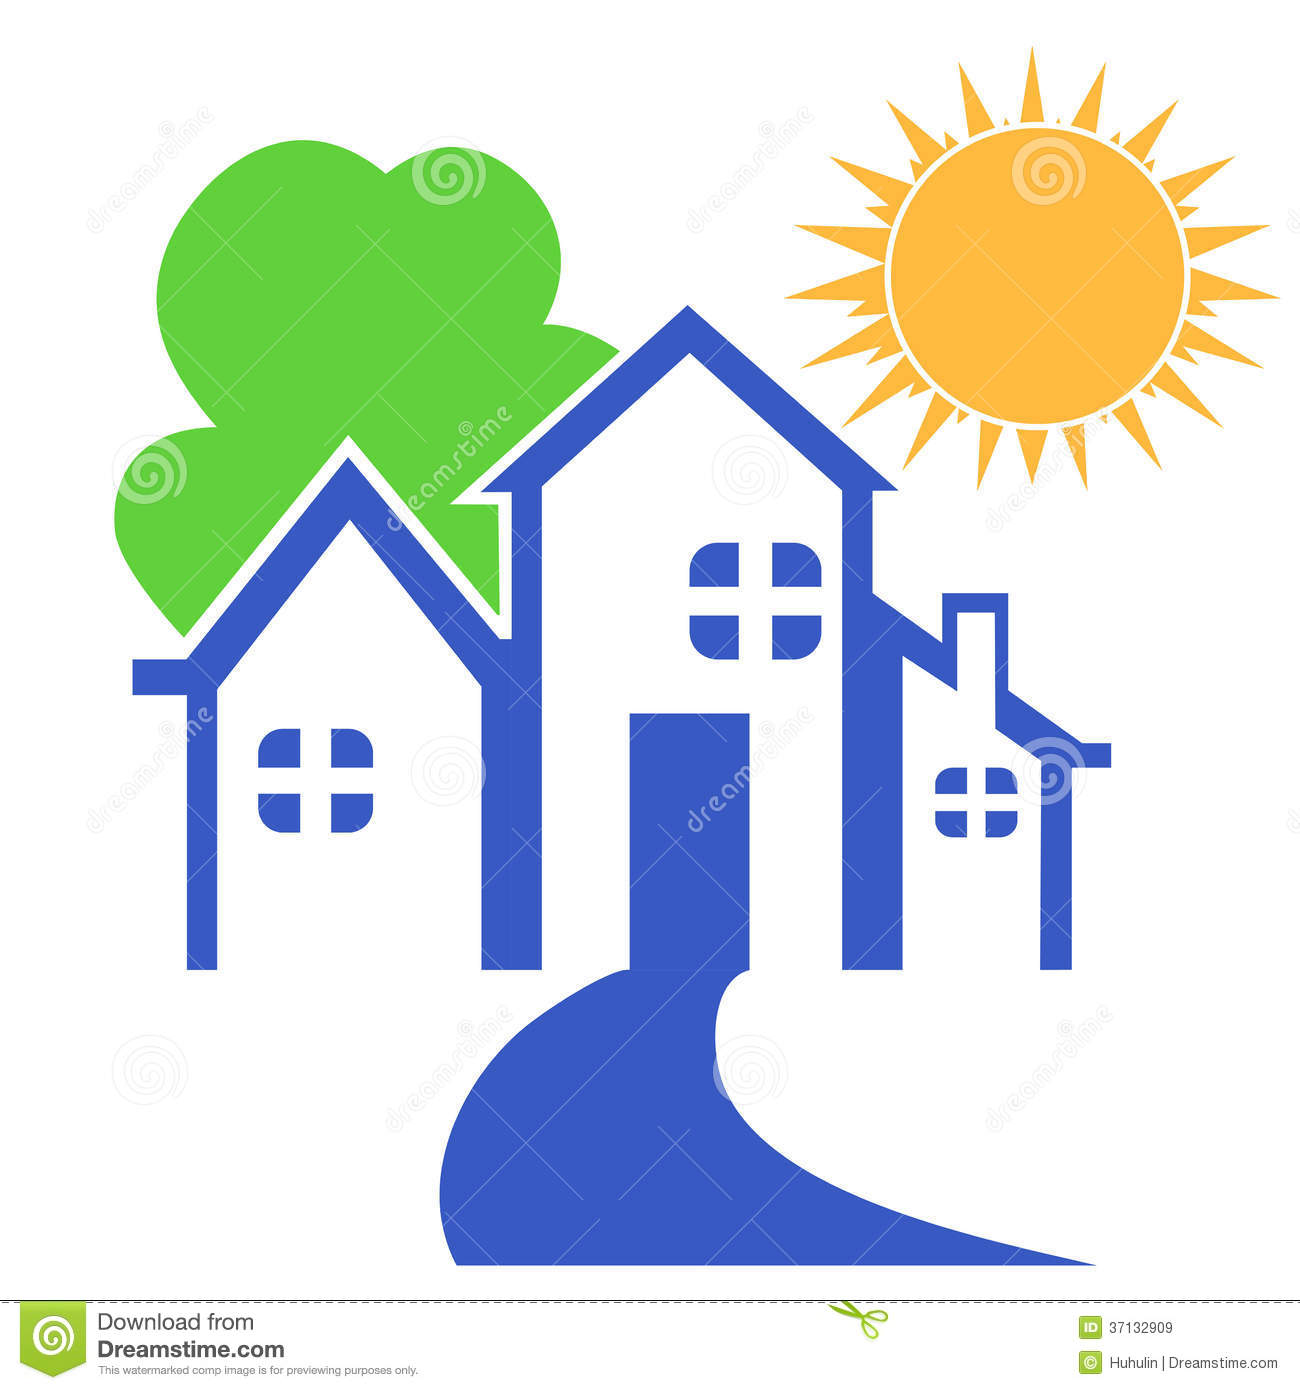 House With Tree And Sun Logo Royalty Free Stock Images Image 37132909 - Haus Logo